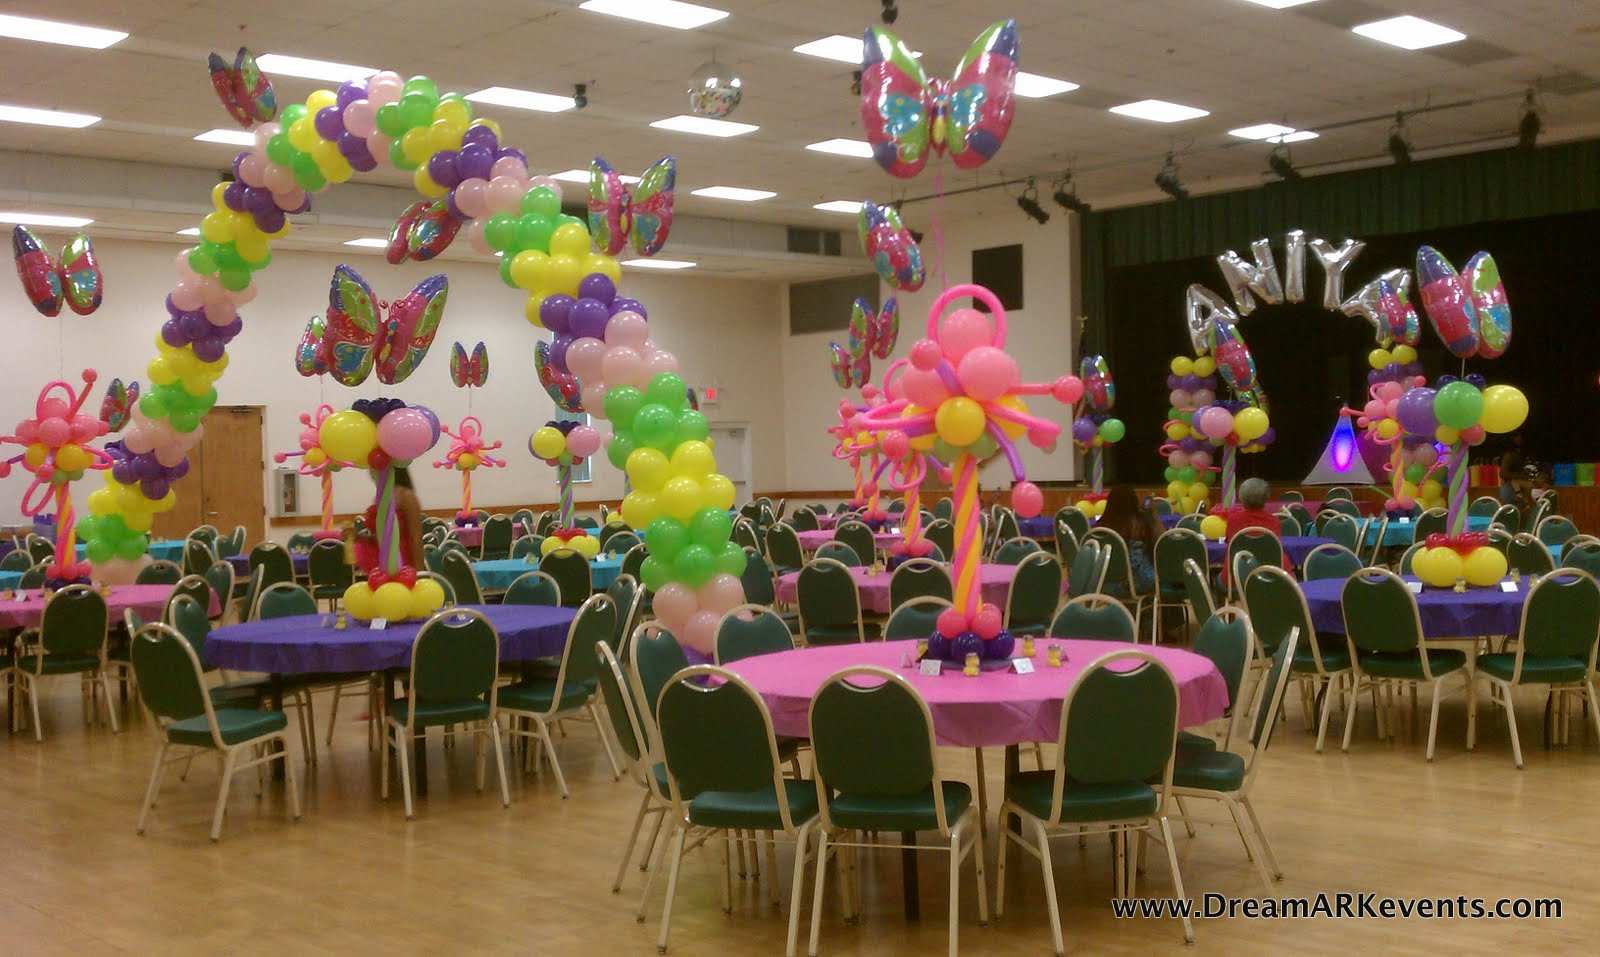 Dreamark events blog july 2012 for Baby shower decoration butterfly